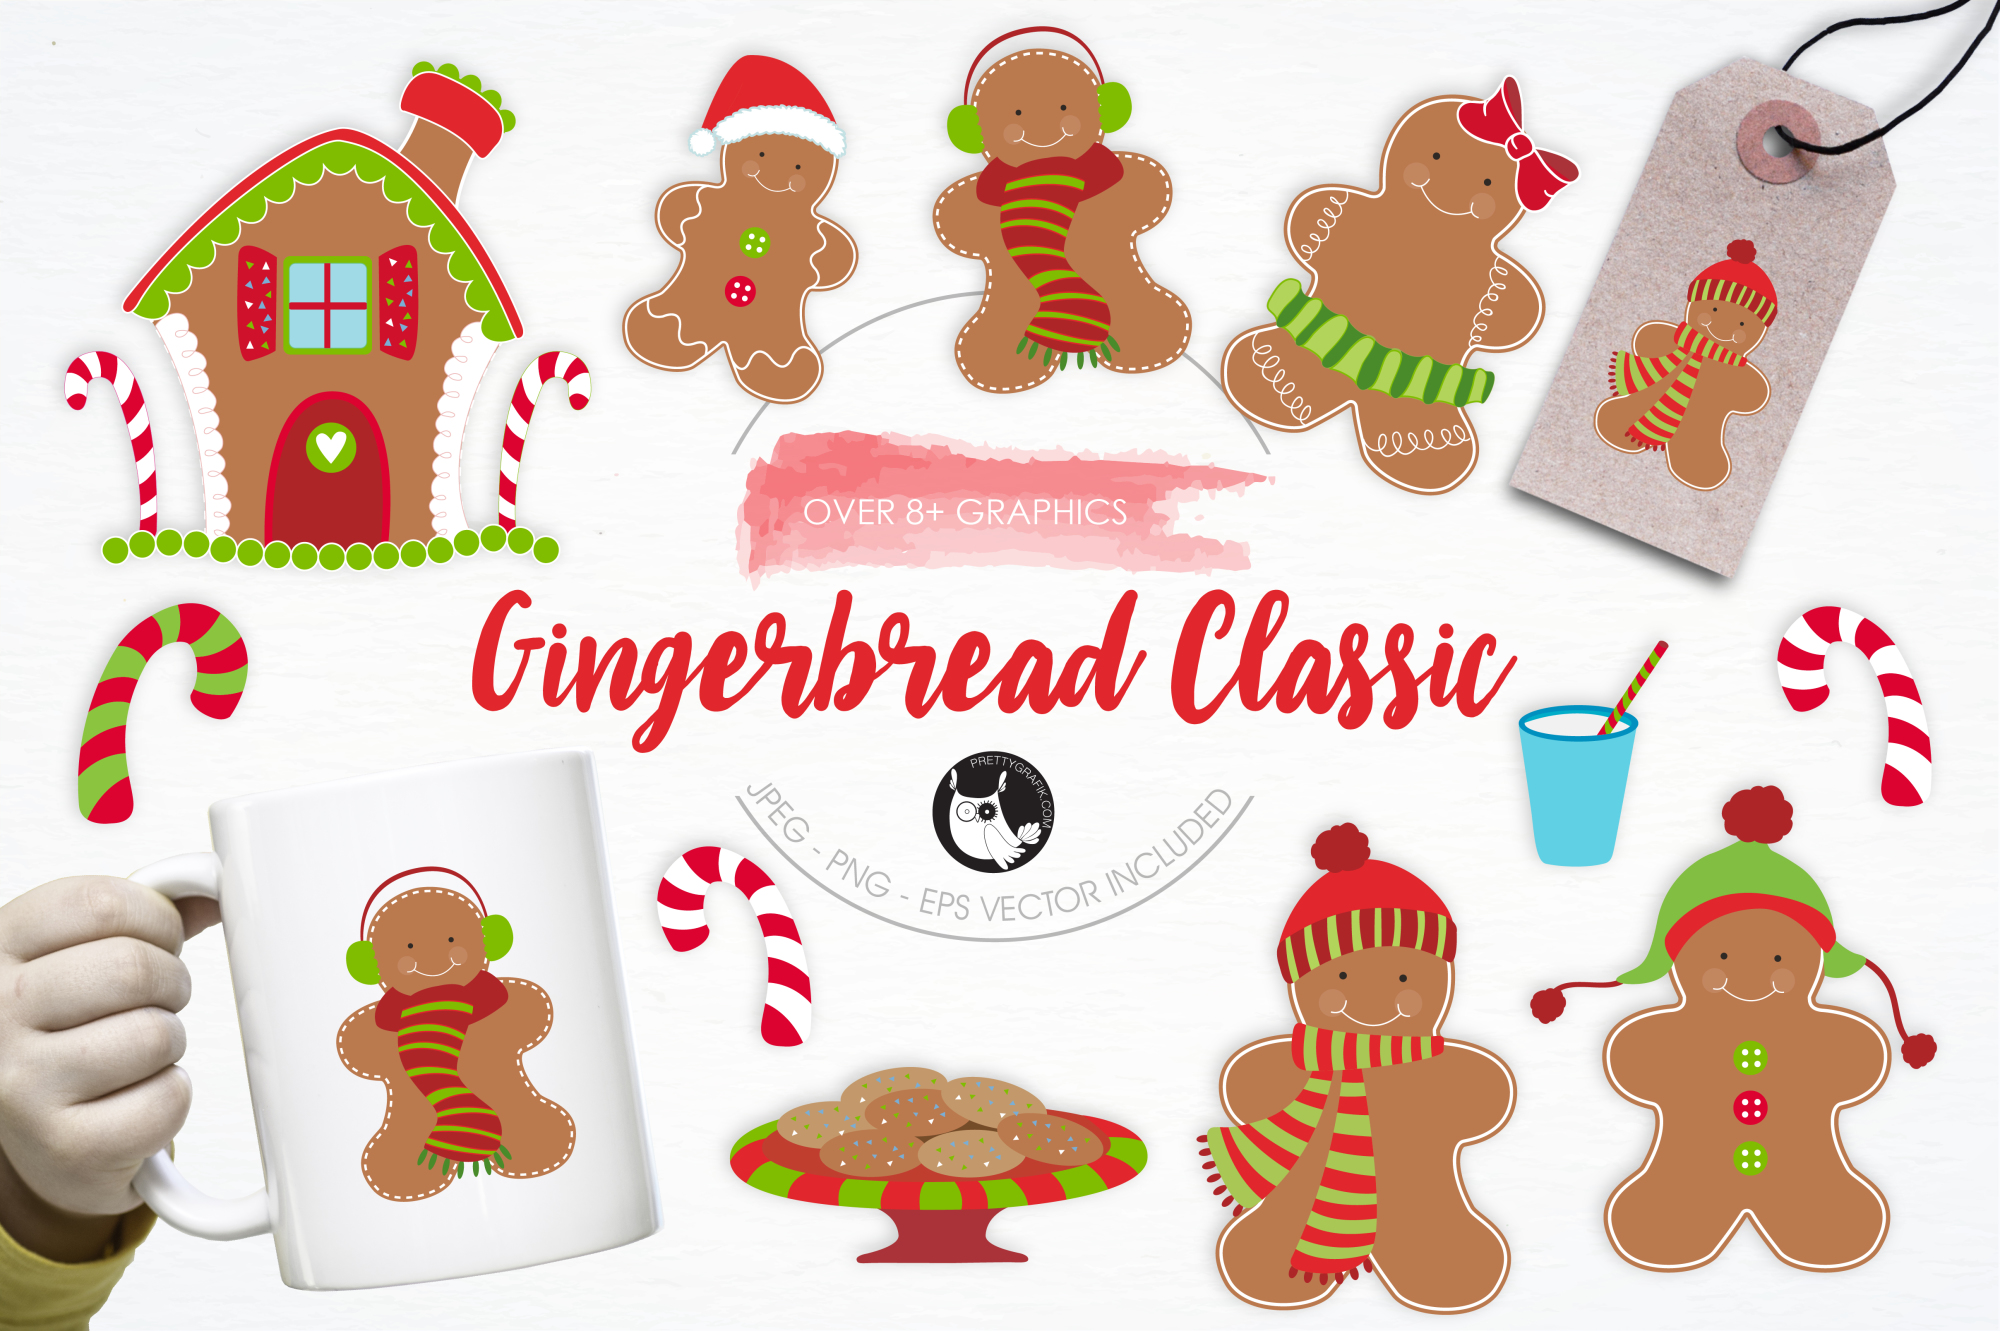 Gingerbread Classic graphics and illustrations example image 1